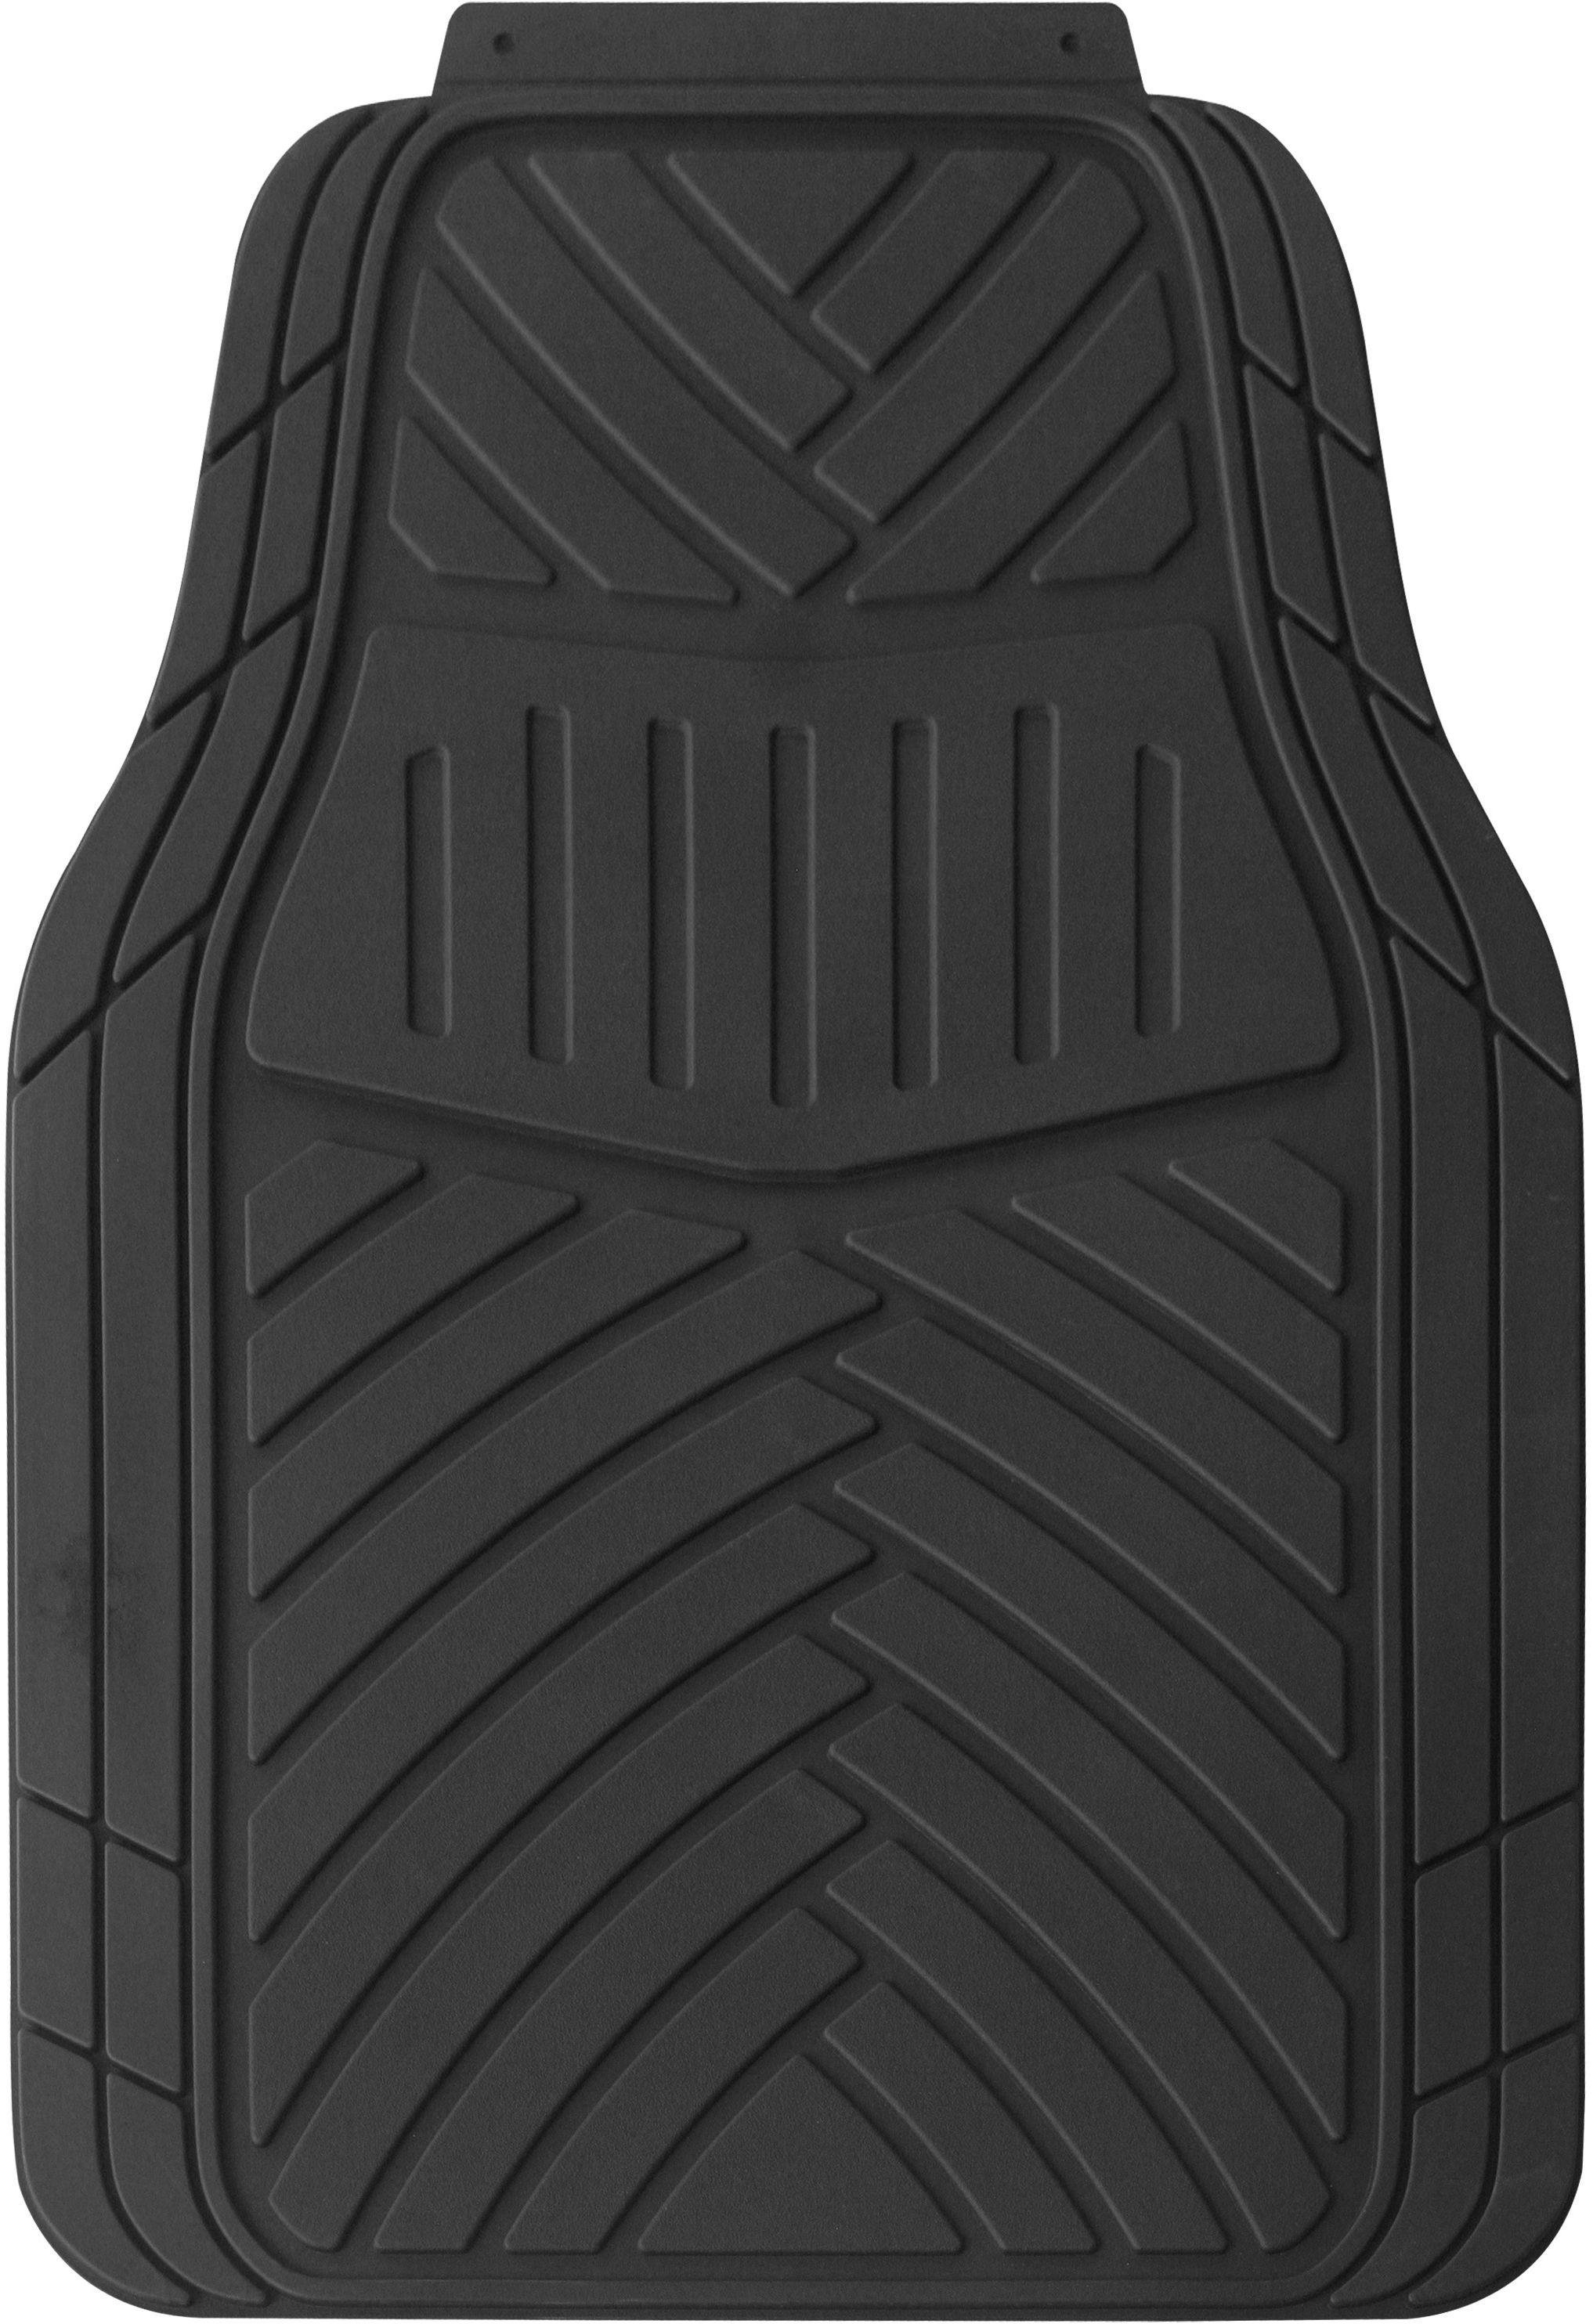 Image of Cosmos - Duro All Weather 4 Piece Car Mat Set - Black